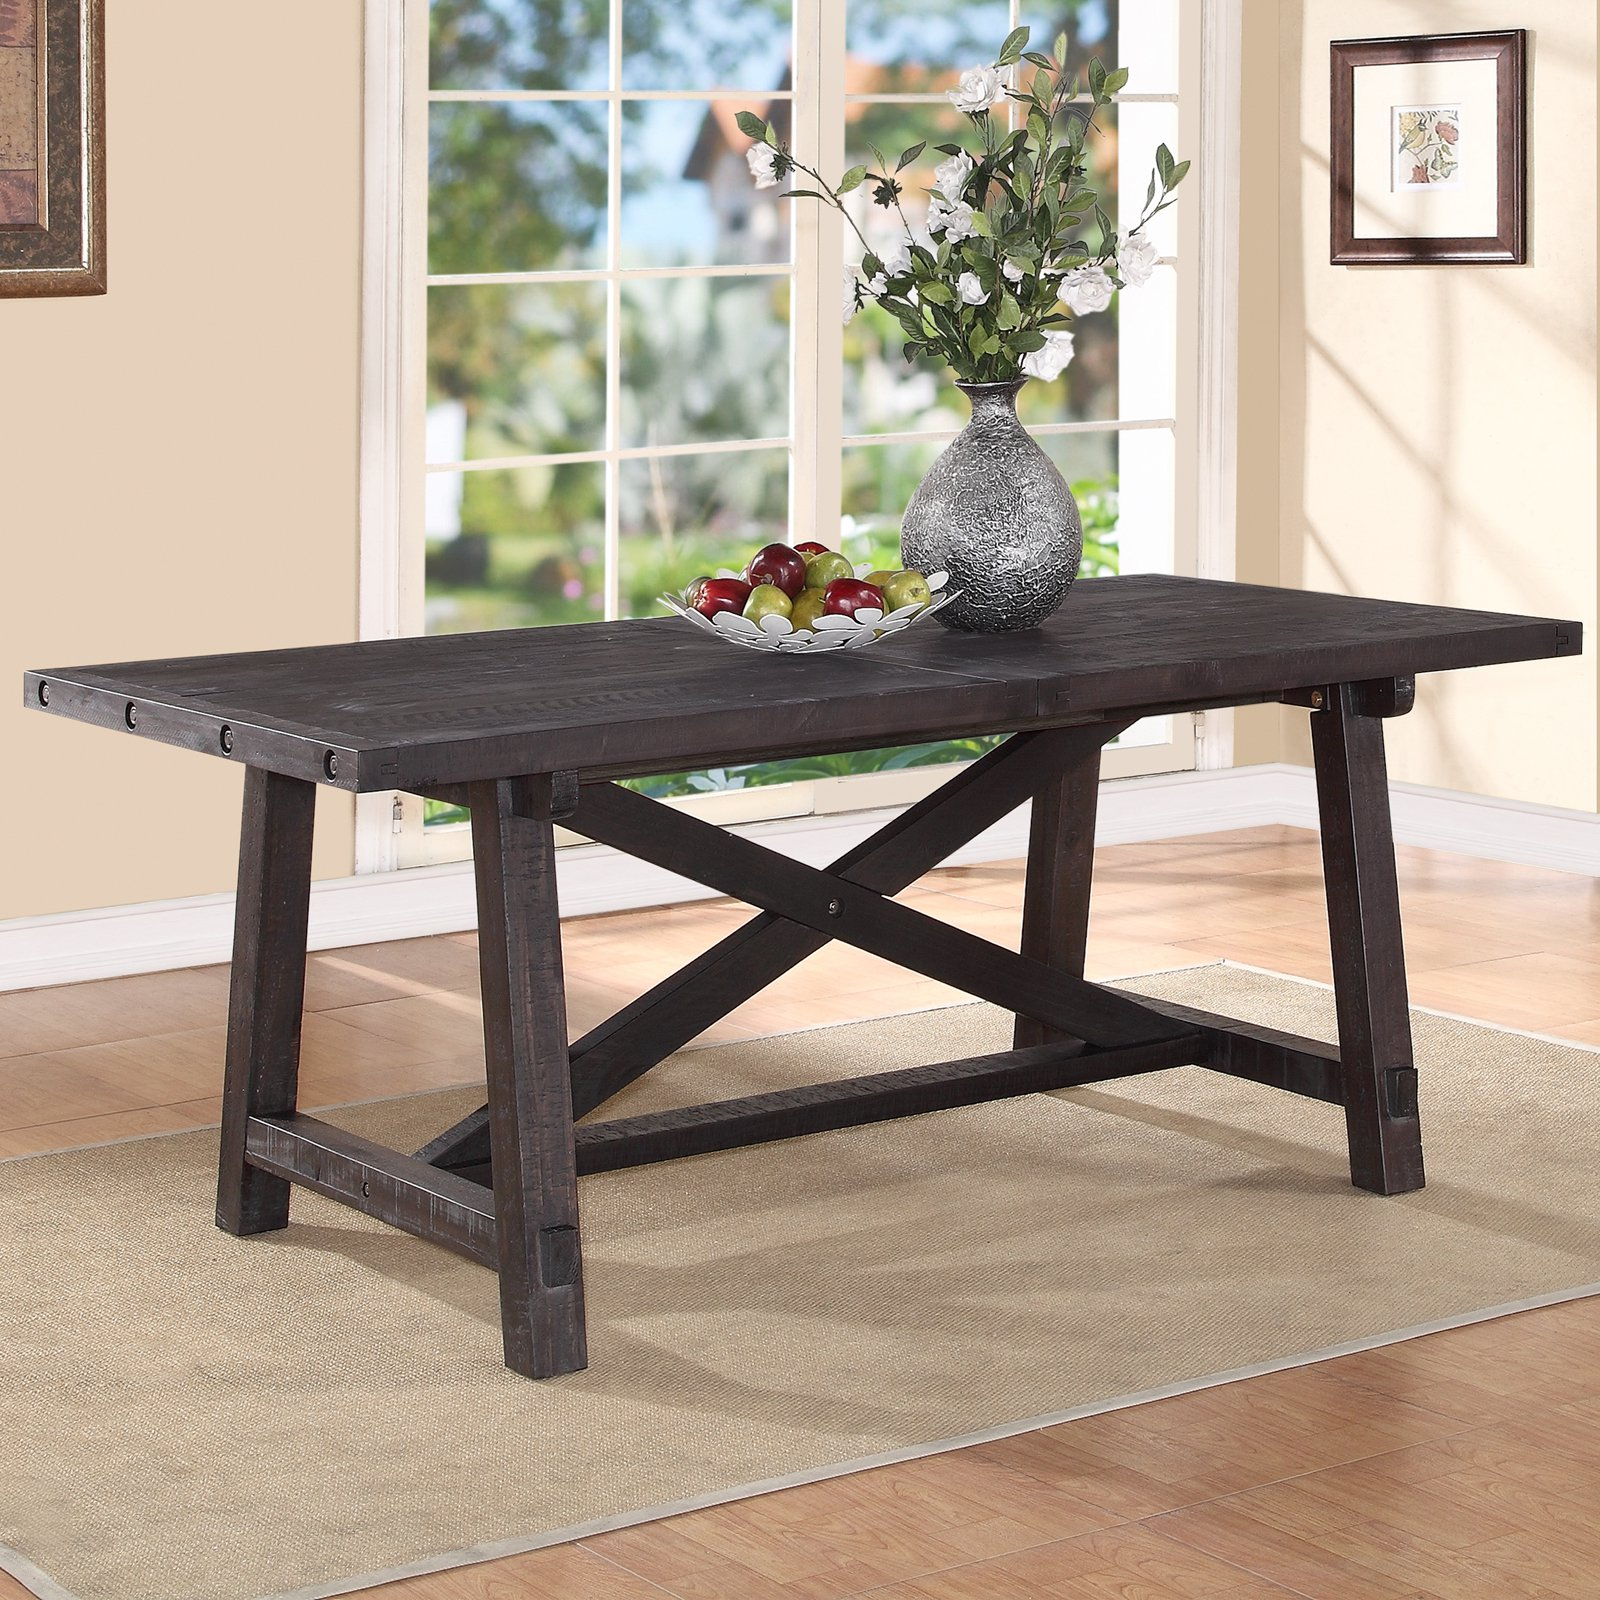 Etonnant Modus Yosemite Solid Wood Rectangular Extension Table   Cafe   Walmart.com